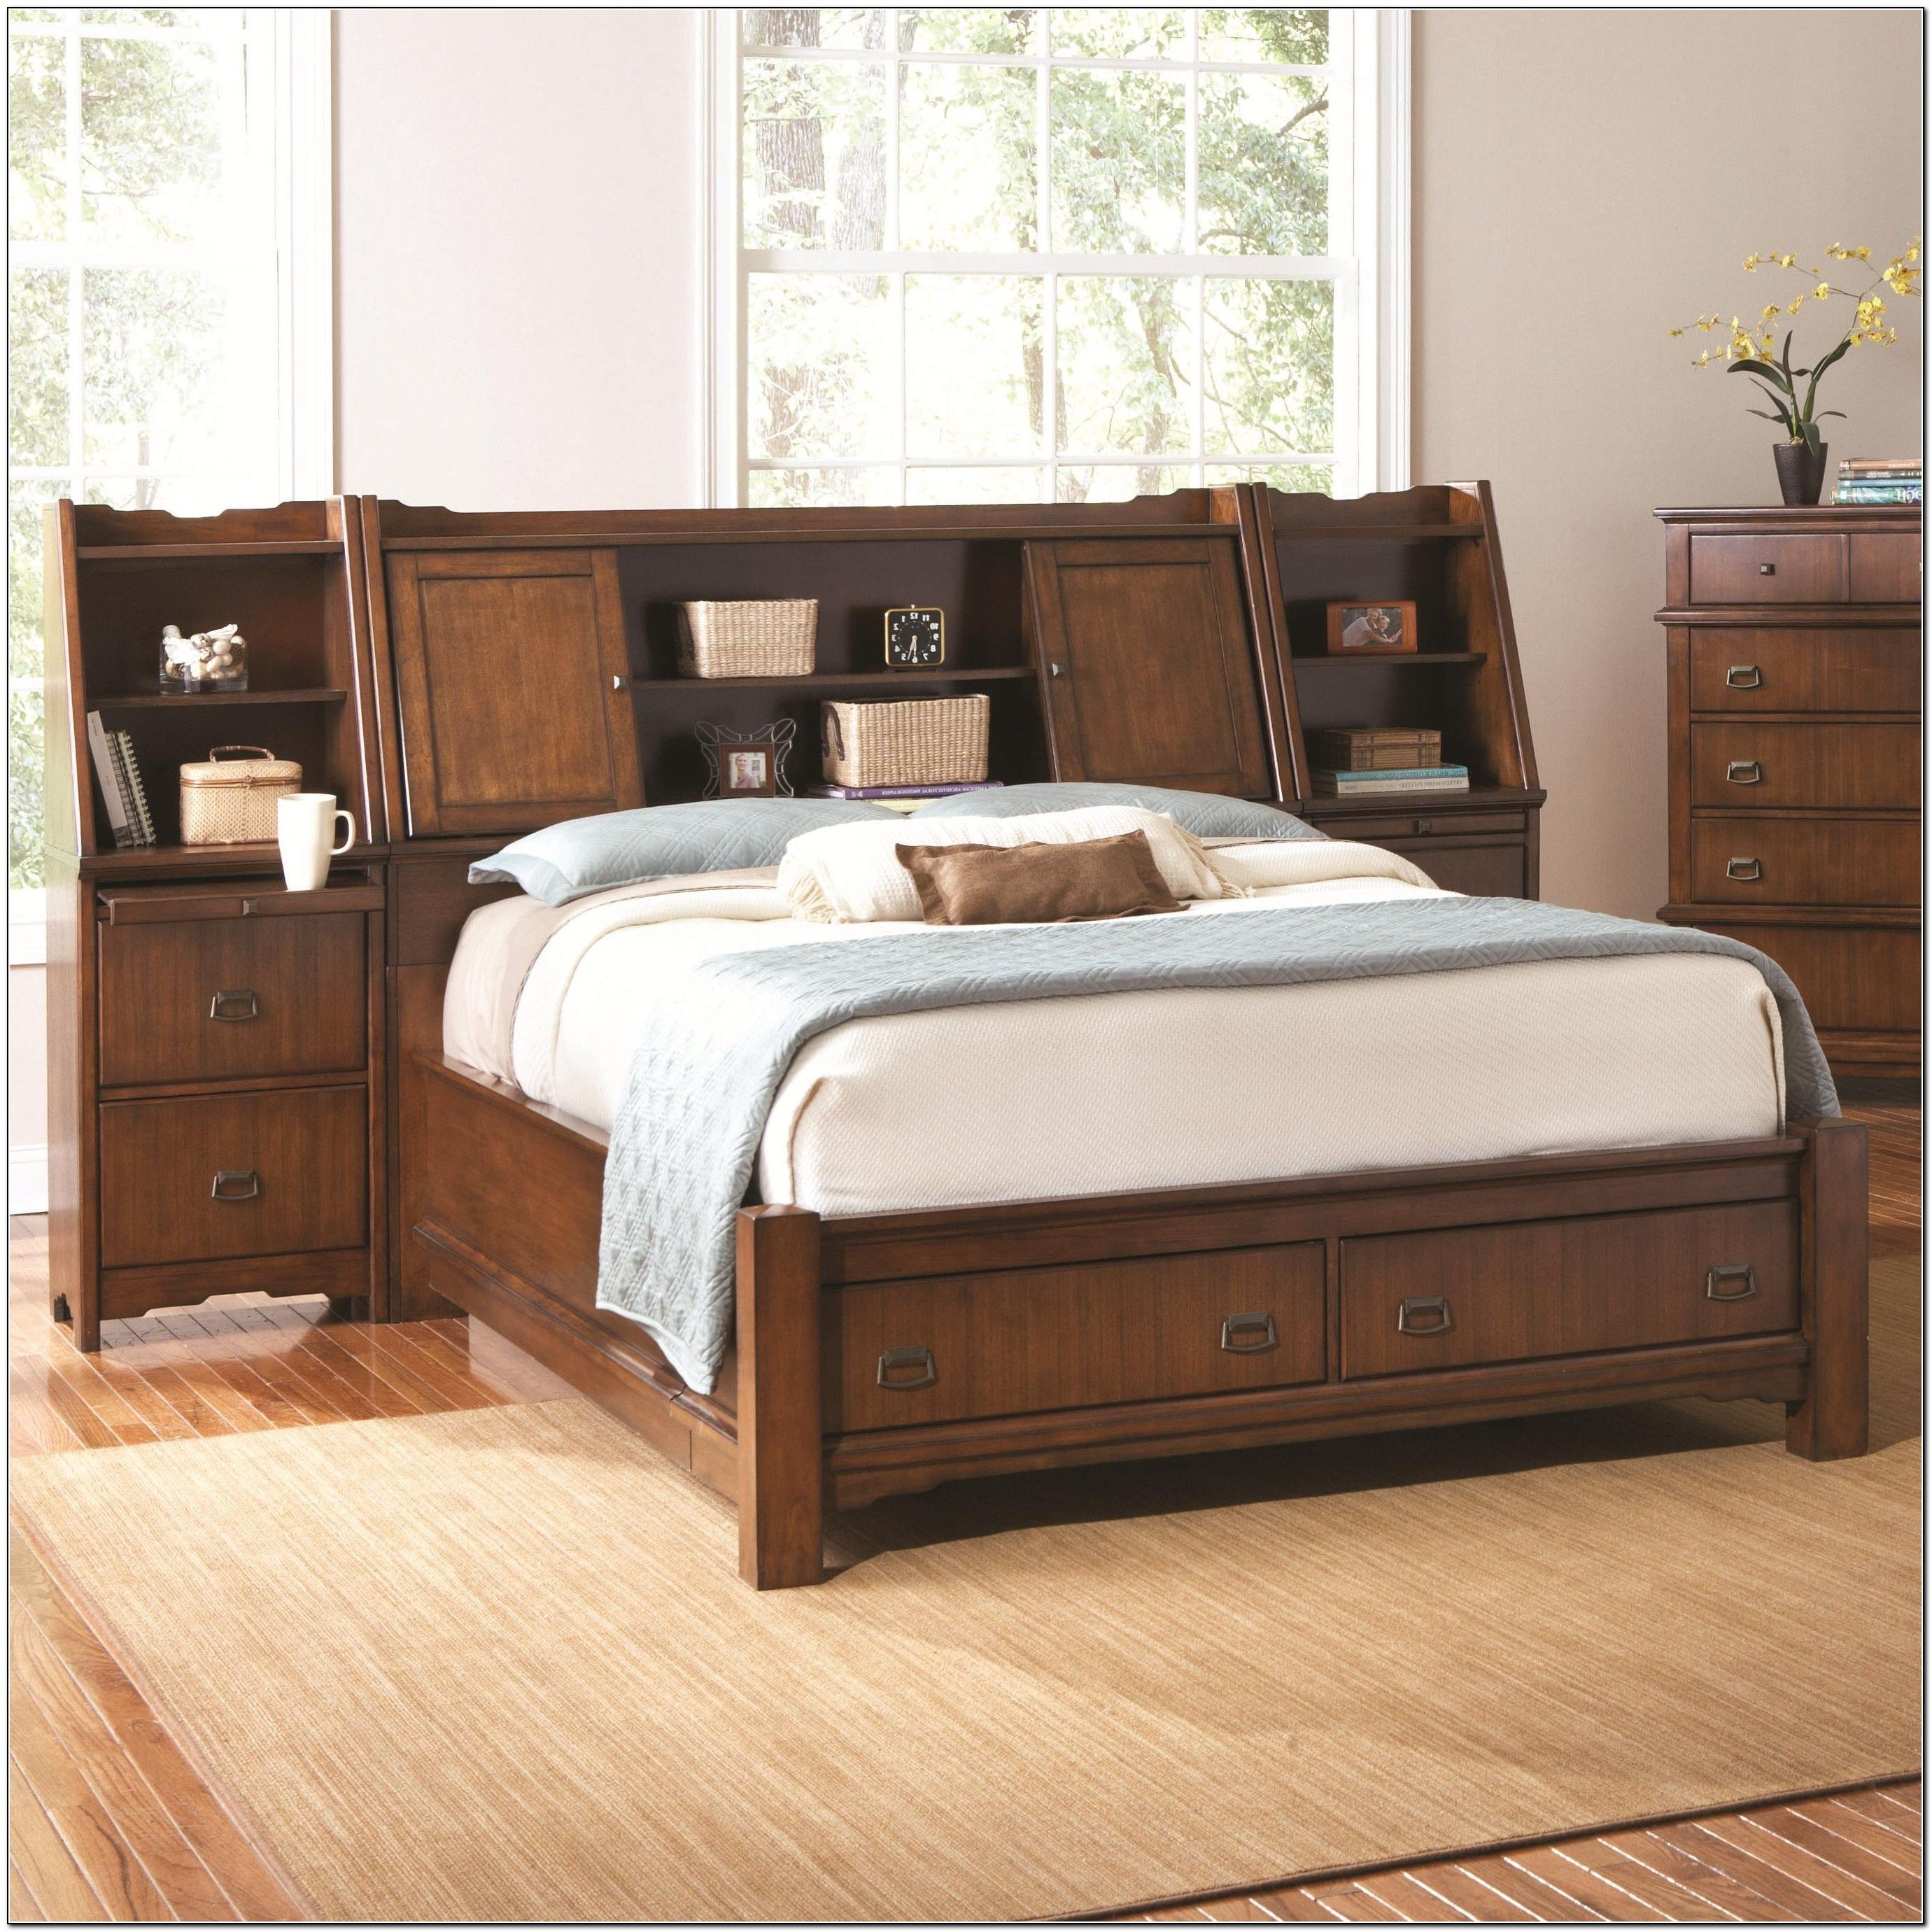 King Storage Bed With Bookcase Headboard Bedroom Furniture